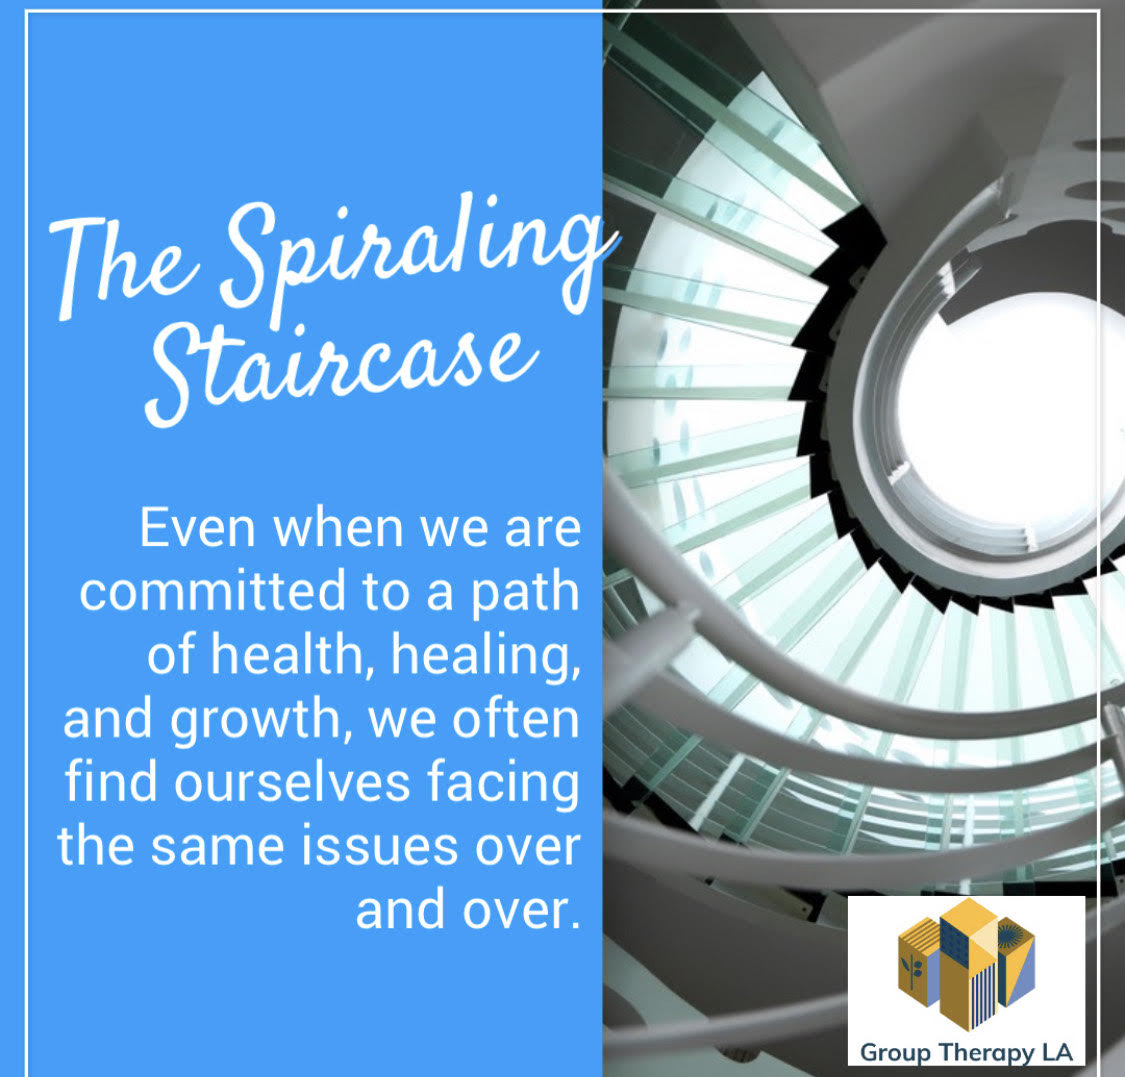 The Spiraling Staircase